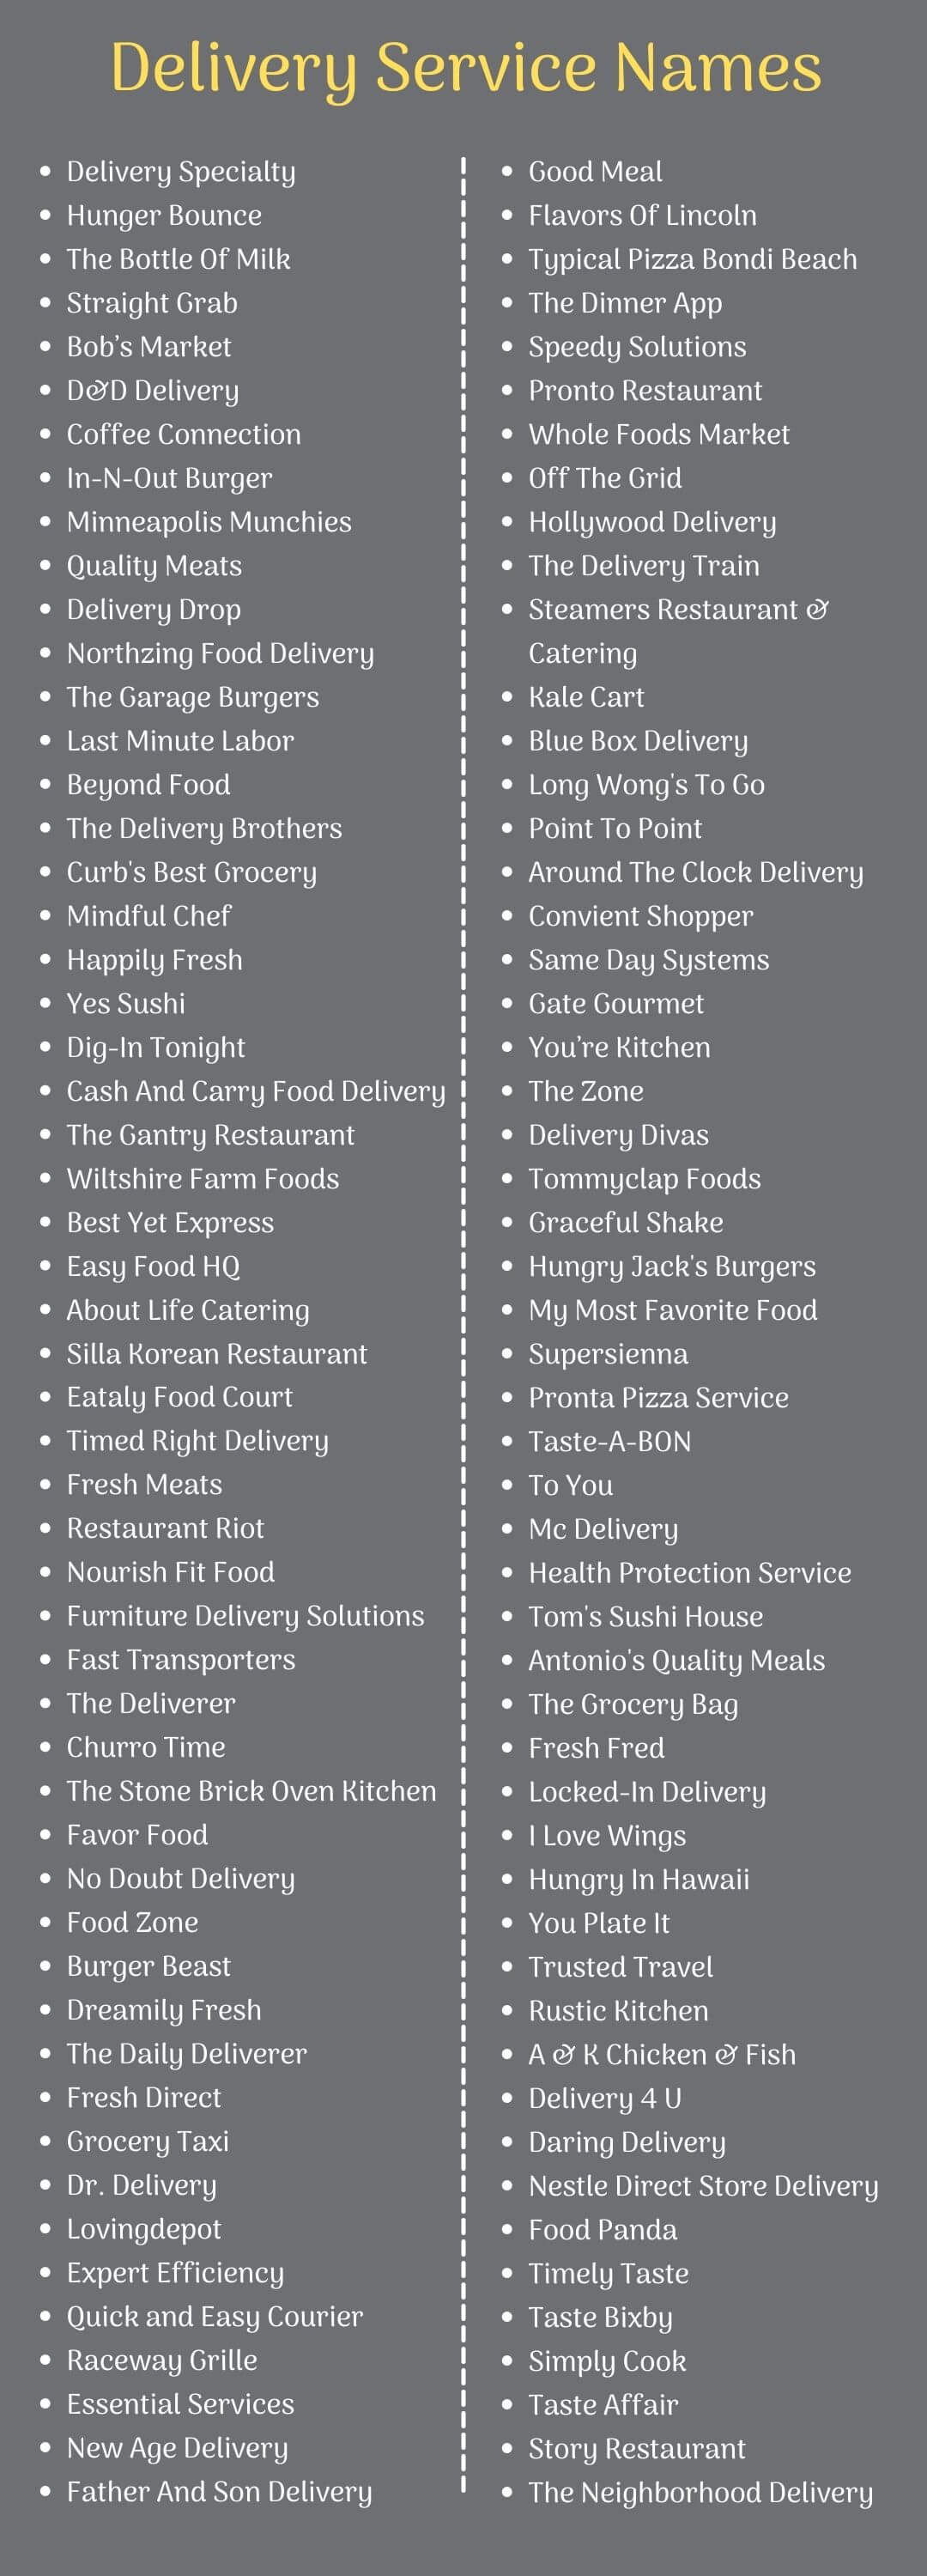 Delivery Service Names